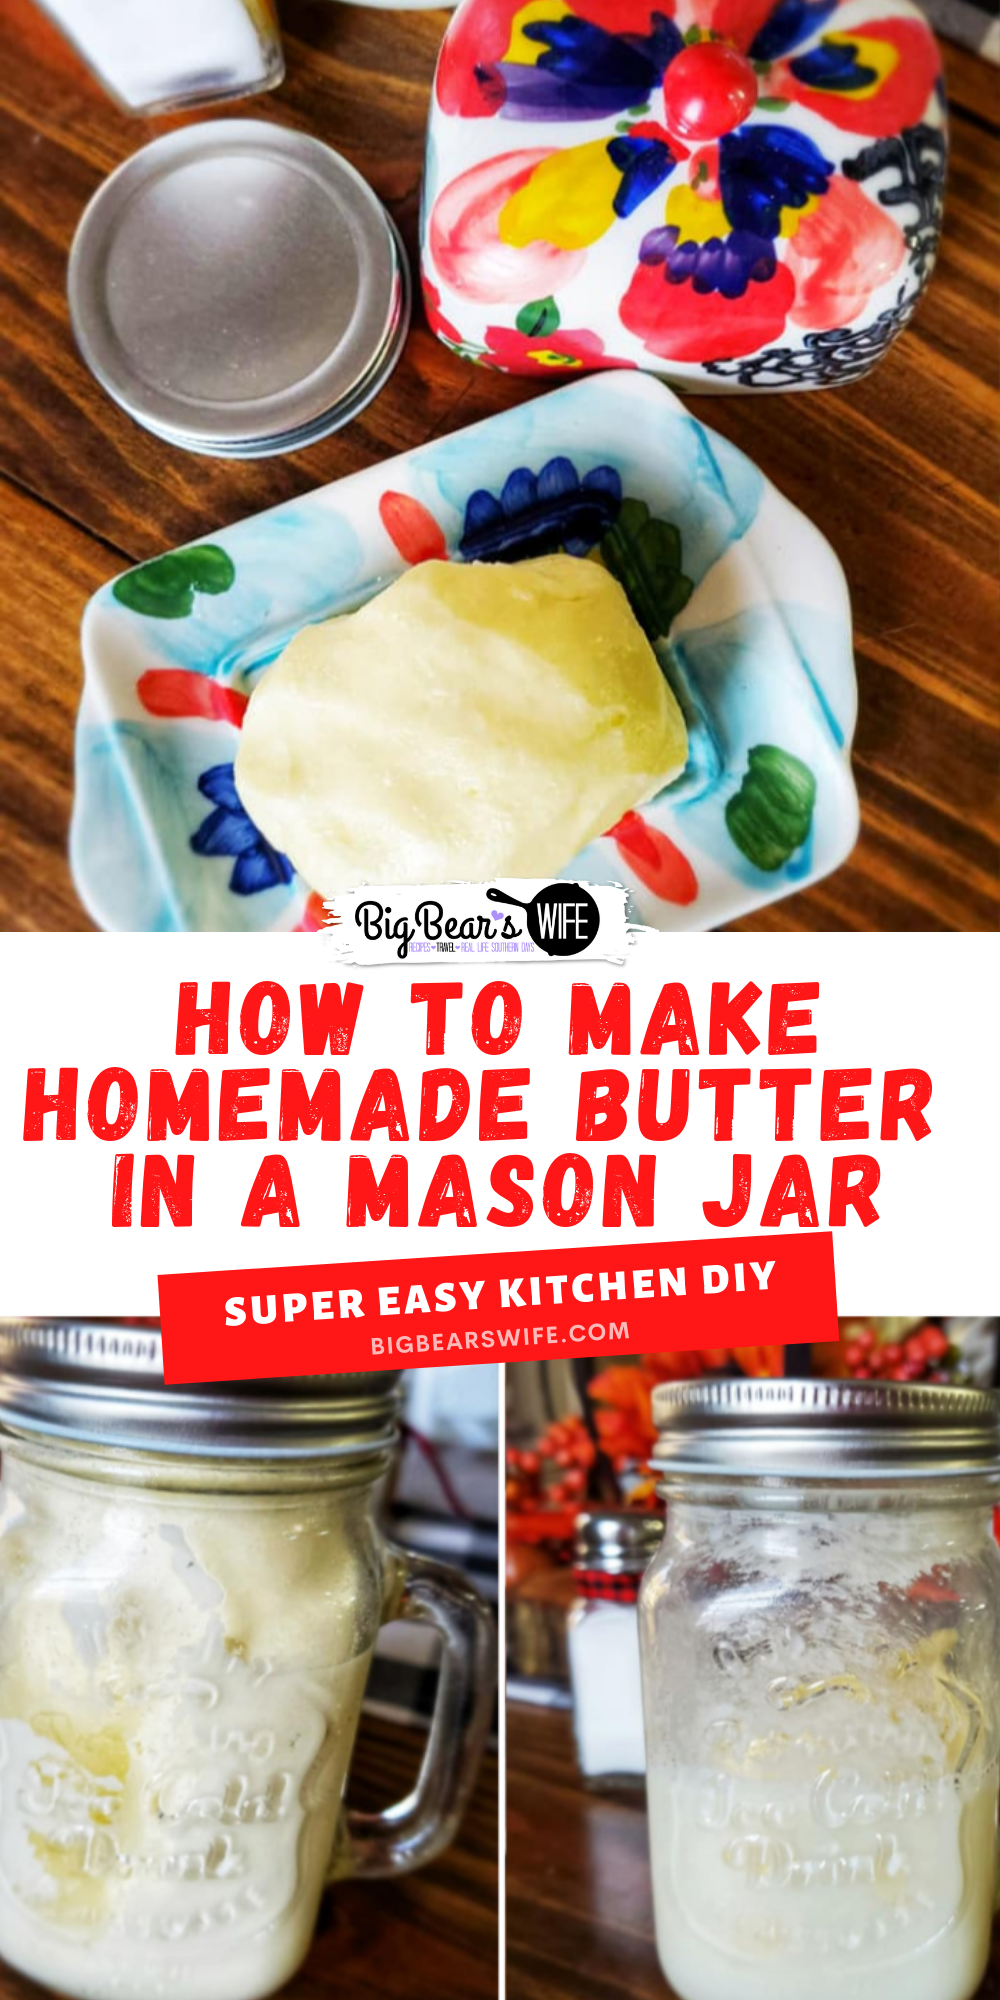 Did you know that you can make homemade butter in a mason jar mason jar? All you need is a mason jar, some heavy cream and salt to make homemade butter!   via @bigbearswife